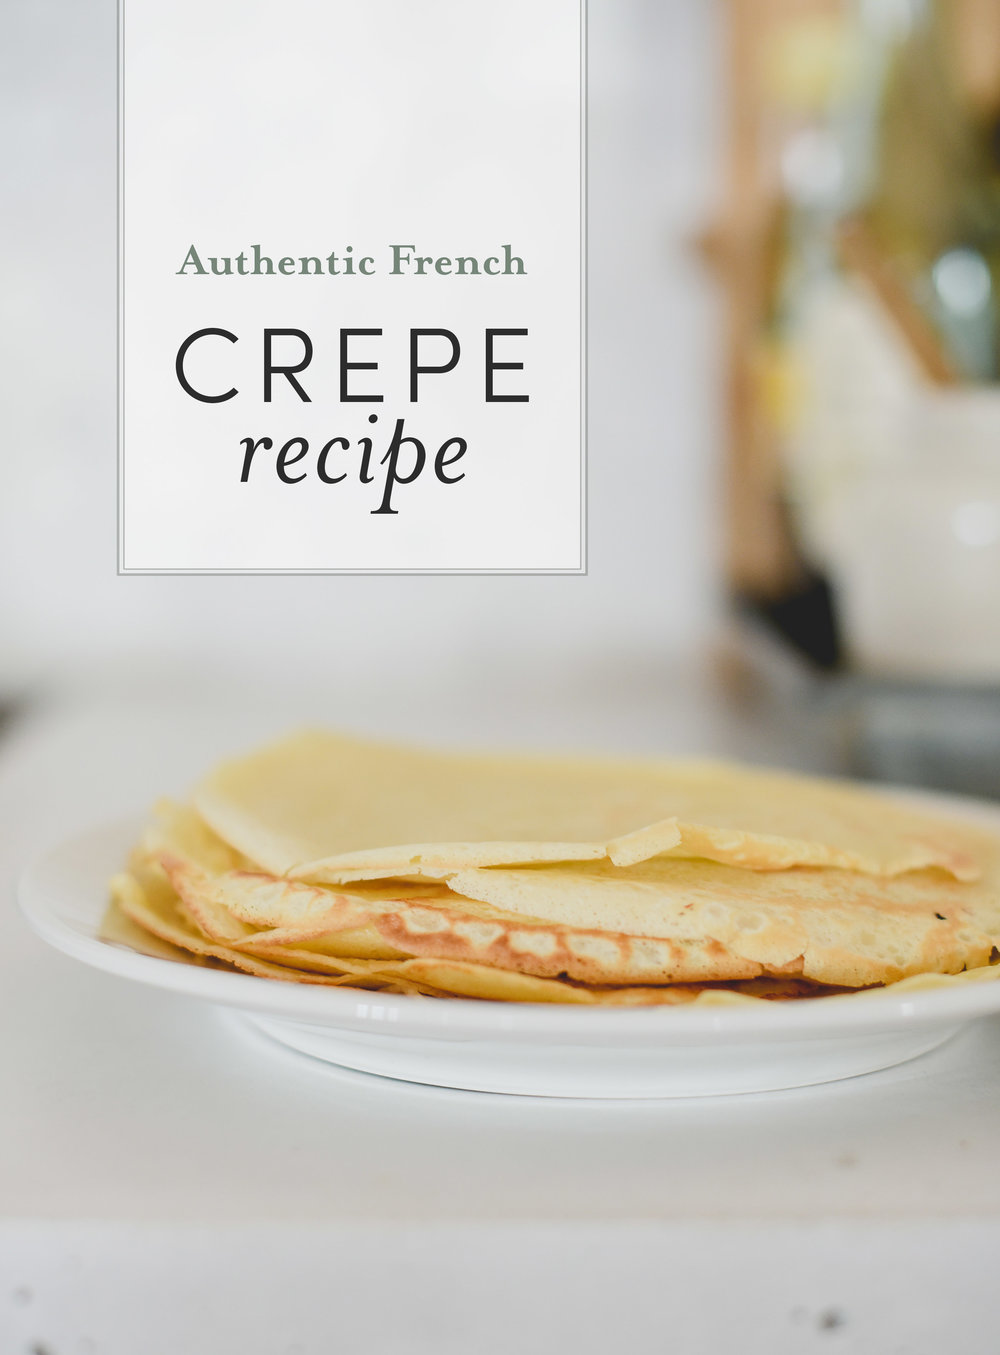 A delicious French crepe recipe for savory or sweet crepes | boxwoodavenue.com